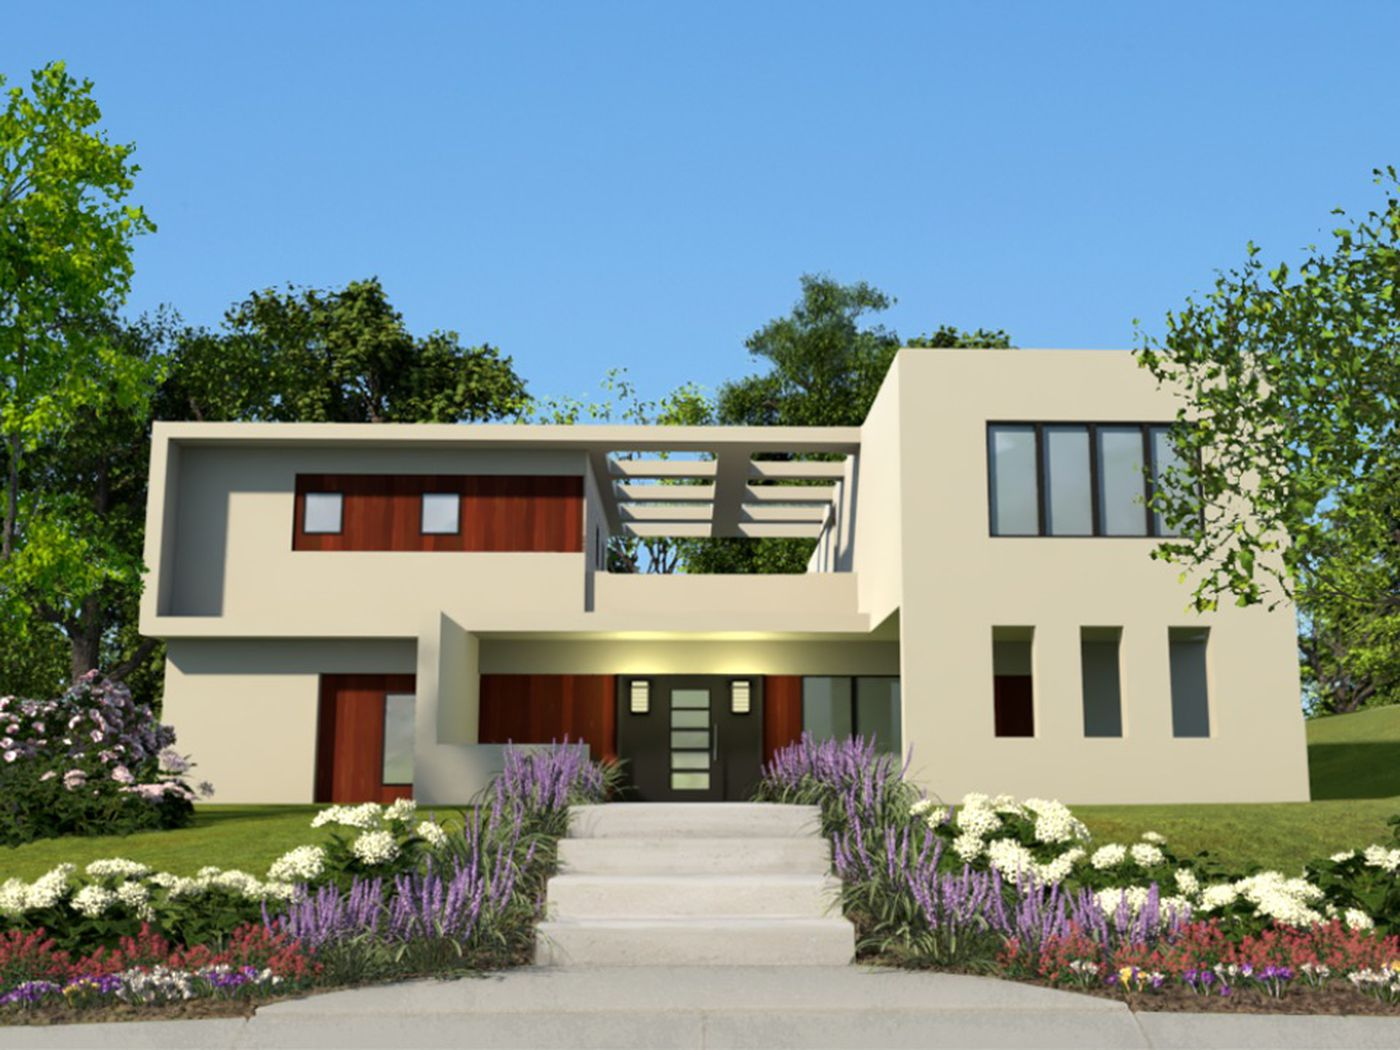 Home Design Customize Your House With New Design Platform Higharc Curbed